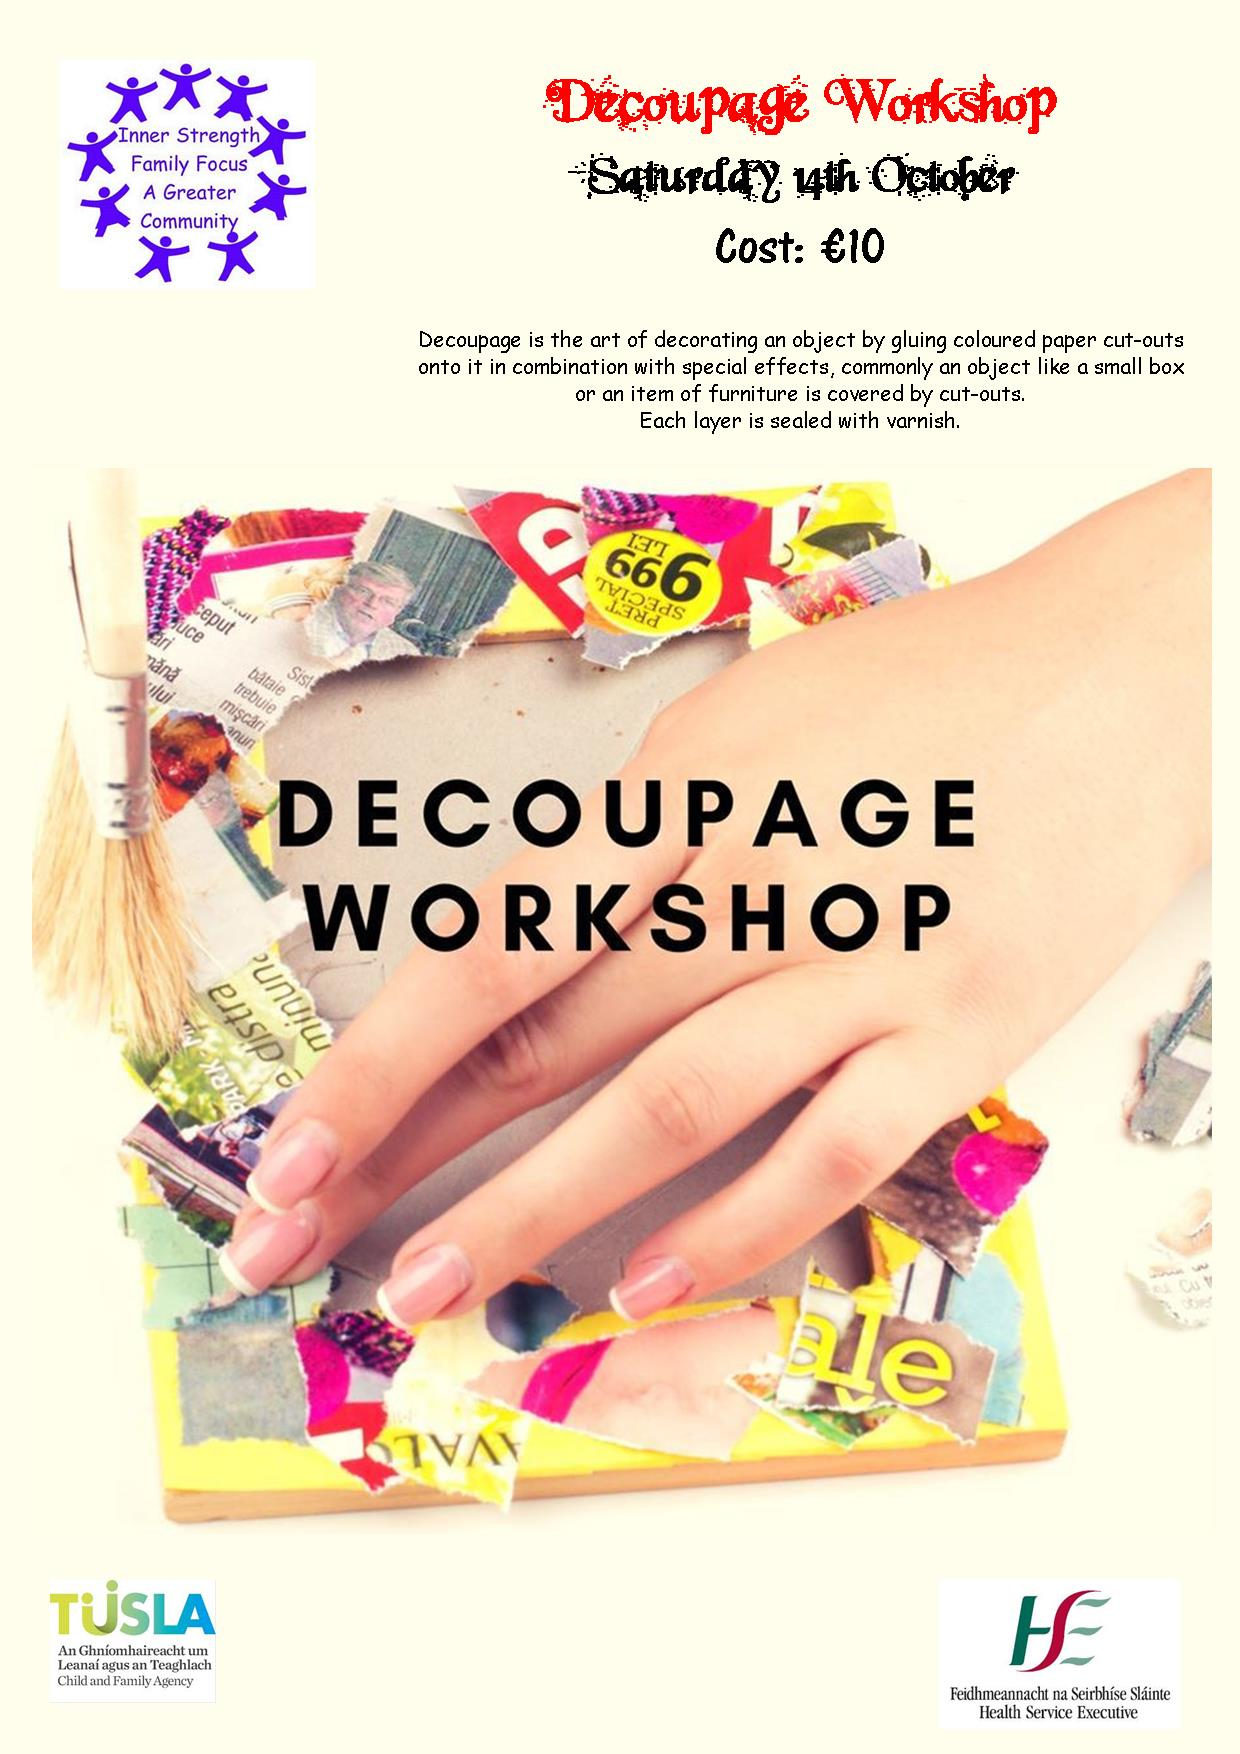 MyCarrick Event - Breffni Family Resource Centre - Decoupage